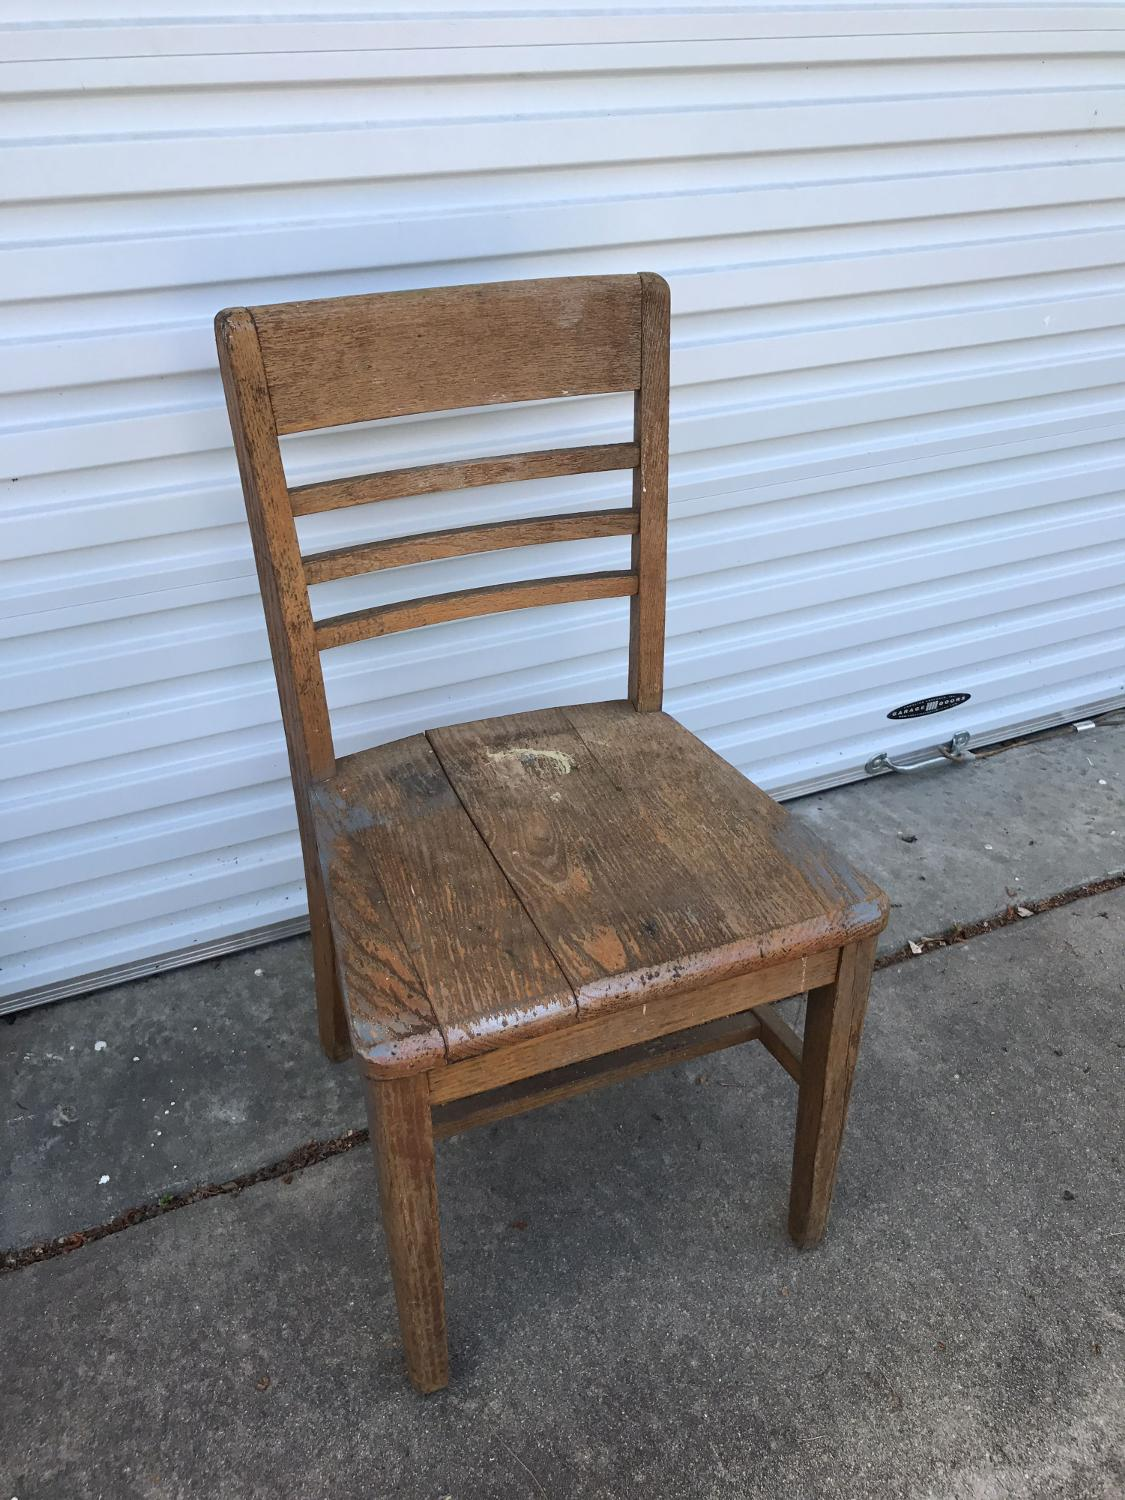 Best An Old Solid Wood Chair Very Sturdy For Sale In Sumter South Carolina For 2017